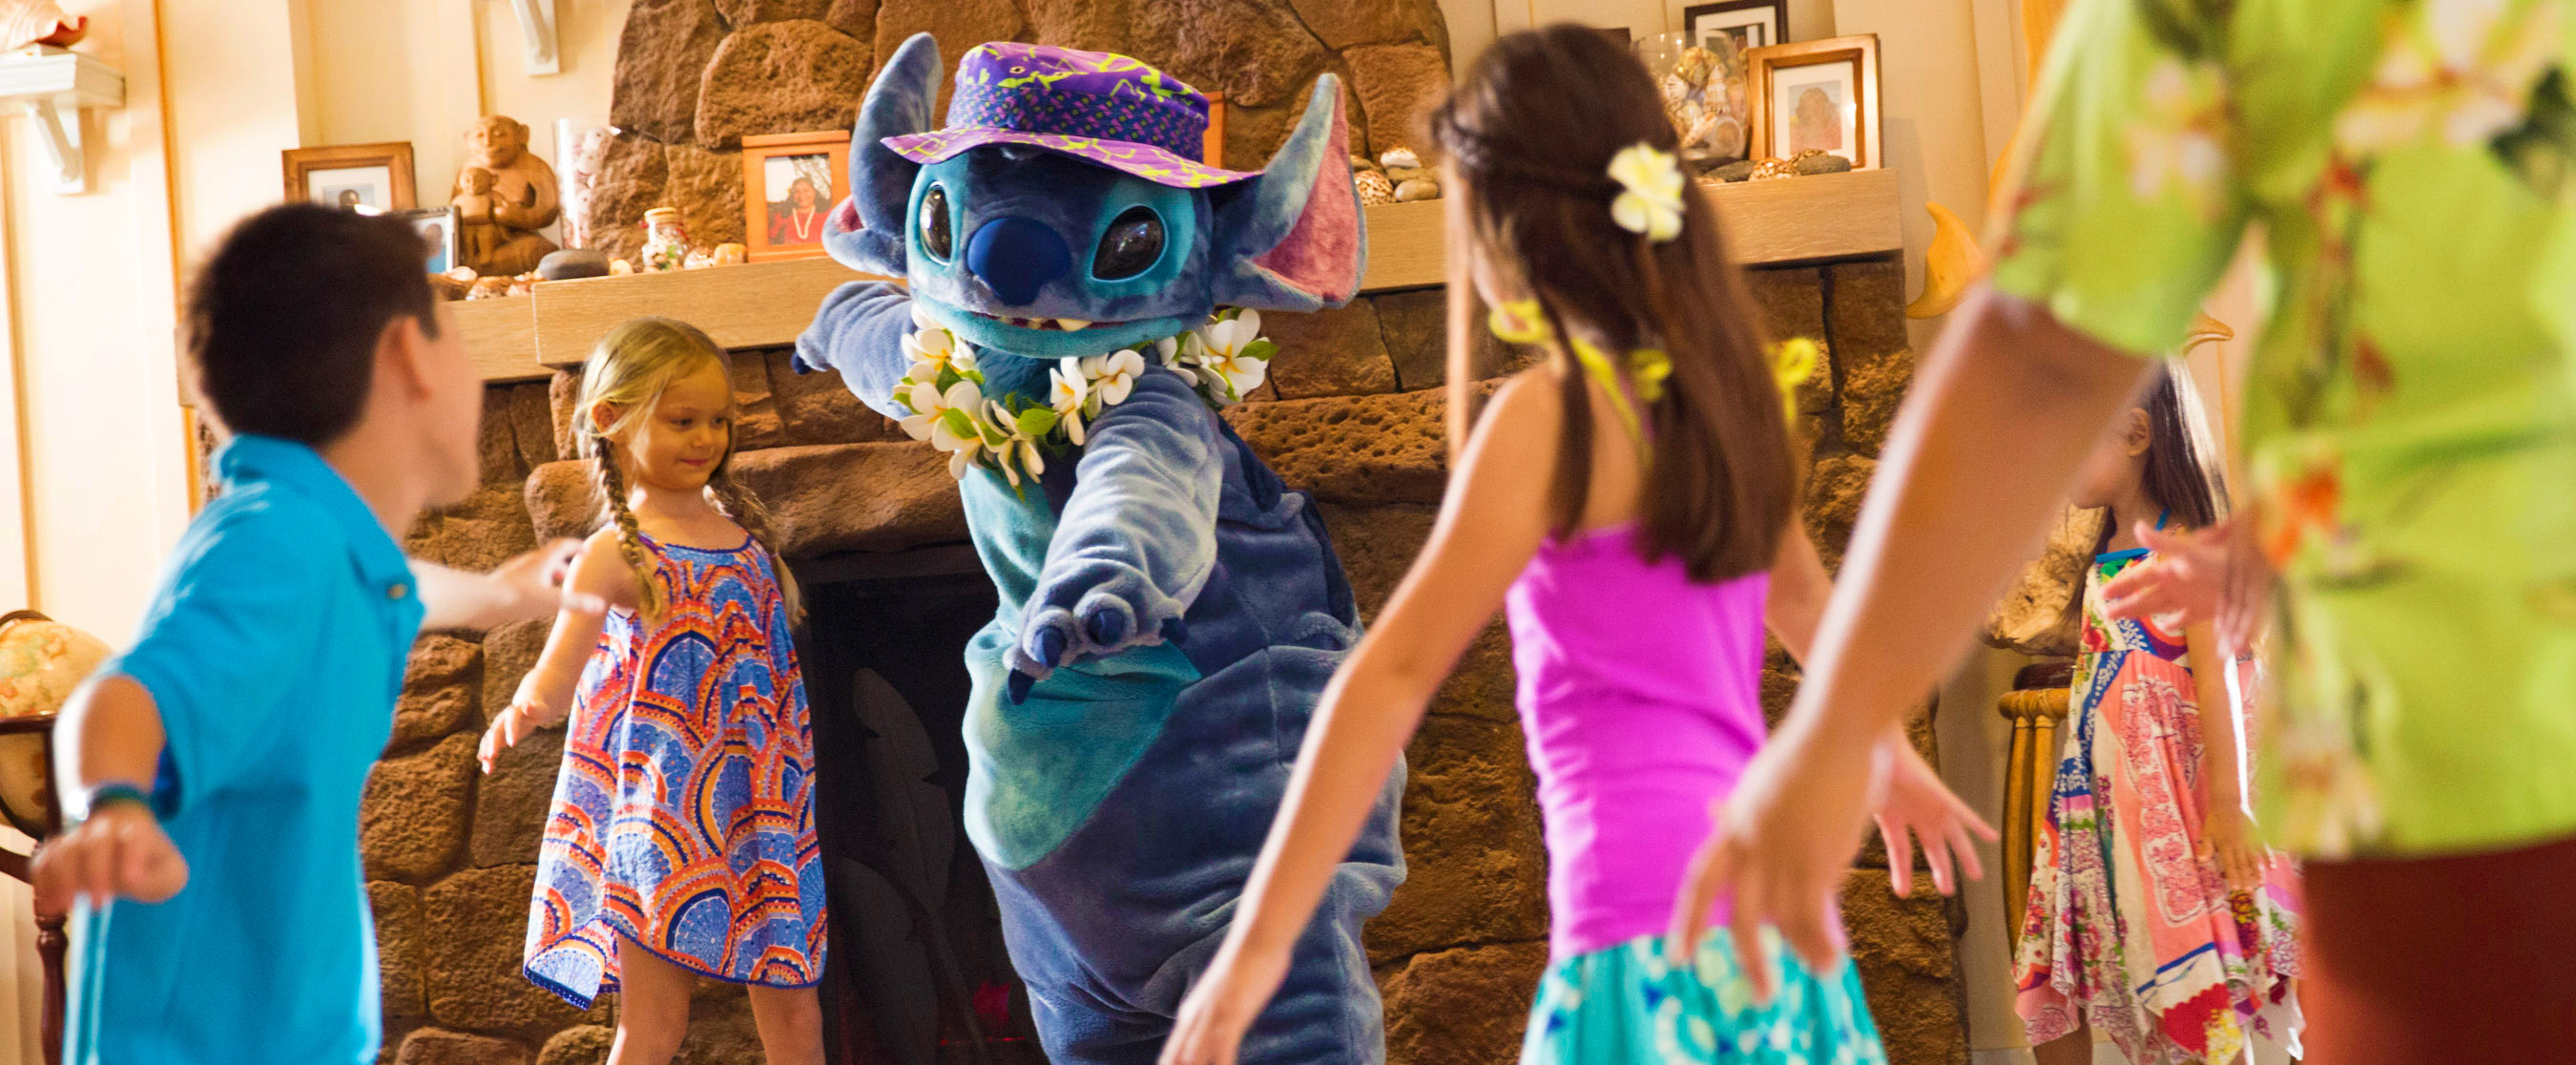 Stitch interacts with children at Aunty's Beach House